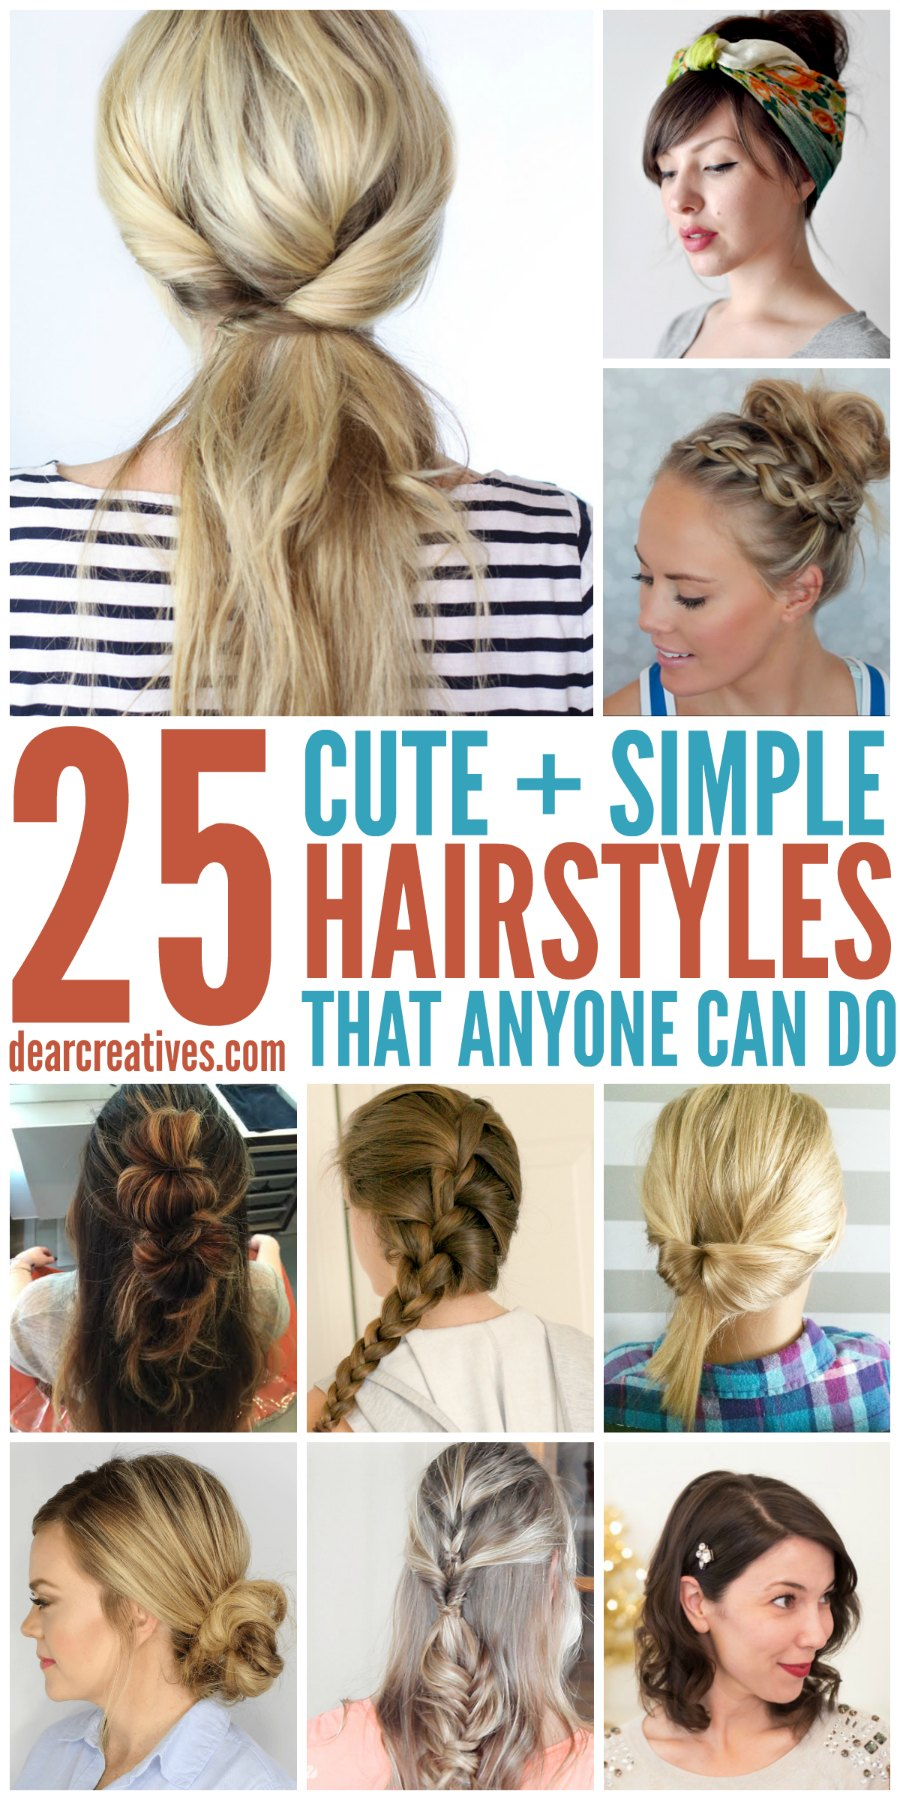 Hairstyles | Hairstyle Ideas | These are cute and easy hairstyles that anyone can do. These hairstyle ideas are for long hair. - DearCreatives.com